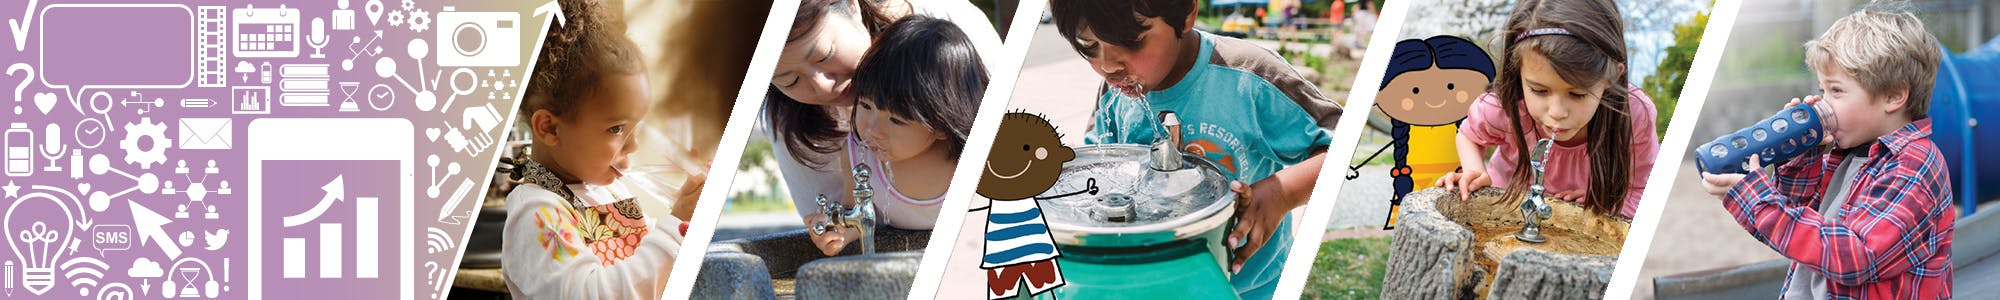 Healthy Kids Community Challenge - Water Does Wonders. Woman and child at a water fountain